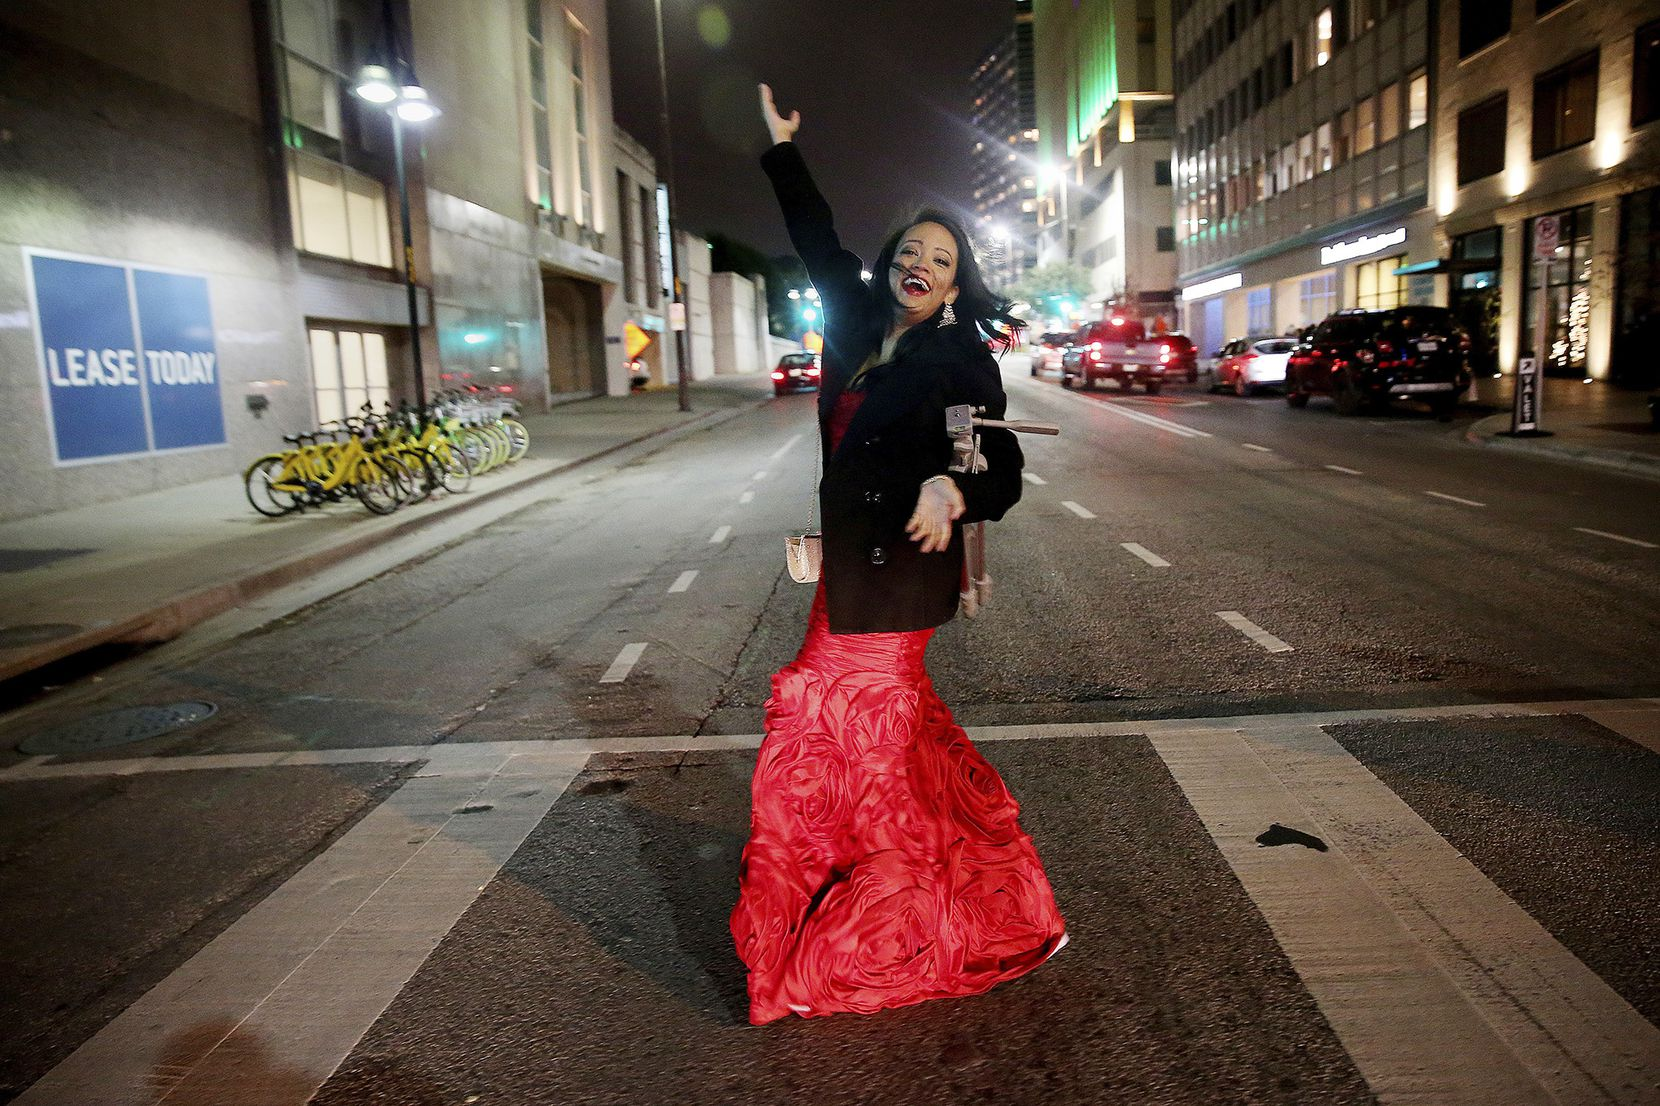 Candace Perry of Addison poses spontaneously while walking to a New Year's Eve party in downtown Dallas on Sunday in freezing weather.